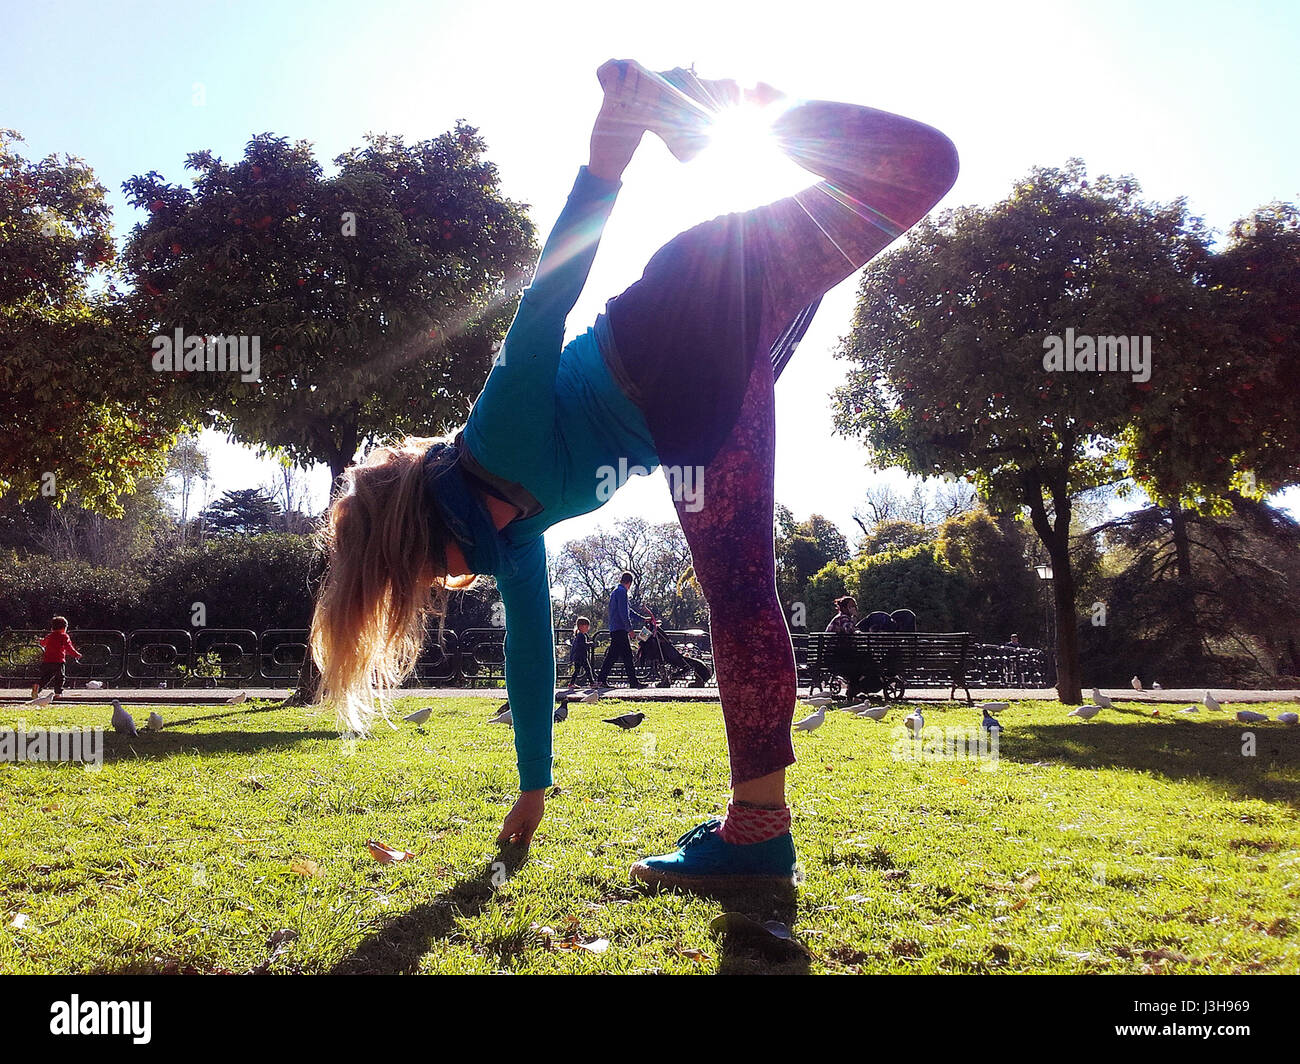 SPAIN, SEVILLE: Claudia is a professional yoga teacher, currently teaching outdoor yoga classes in Seville. - Stock Image